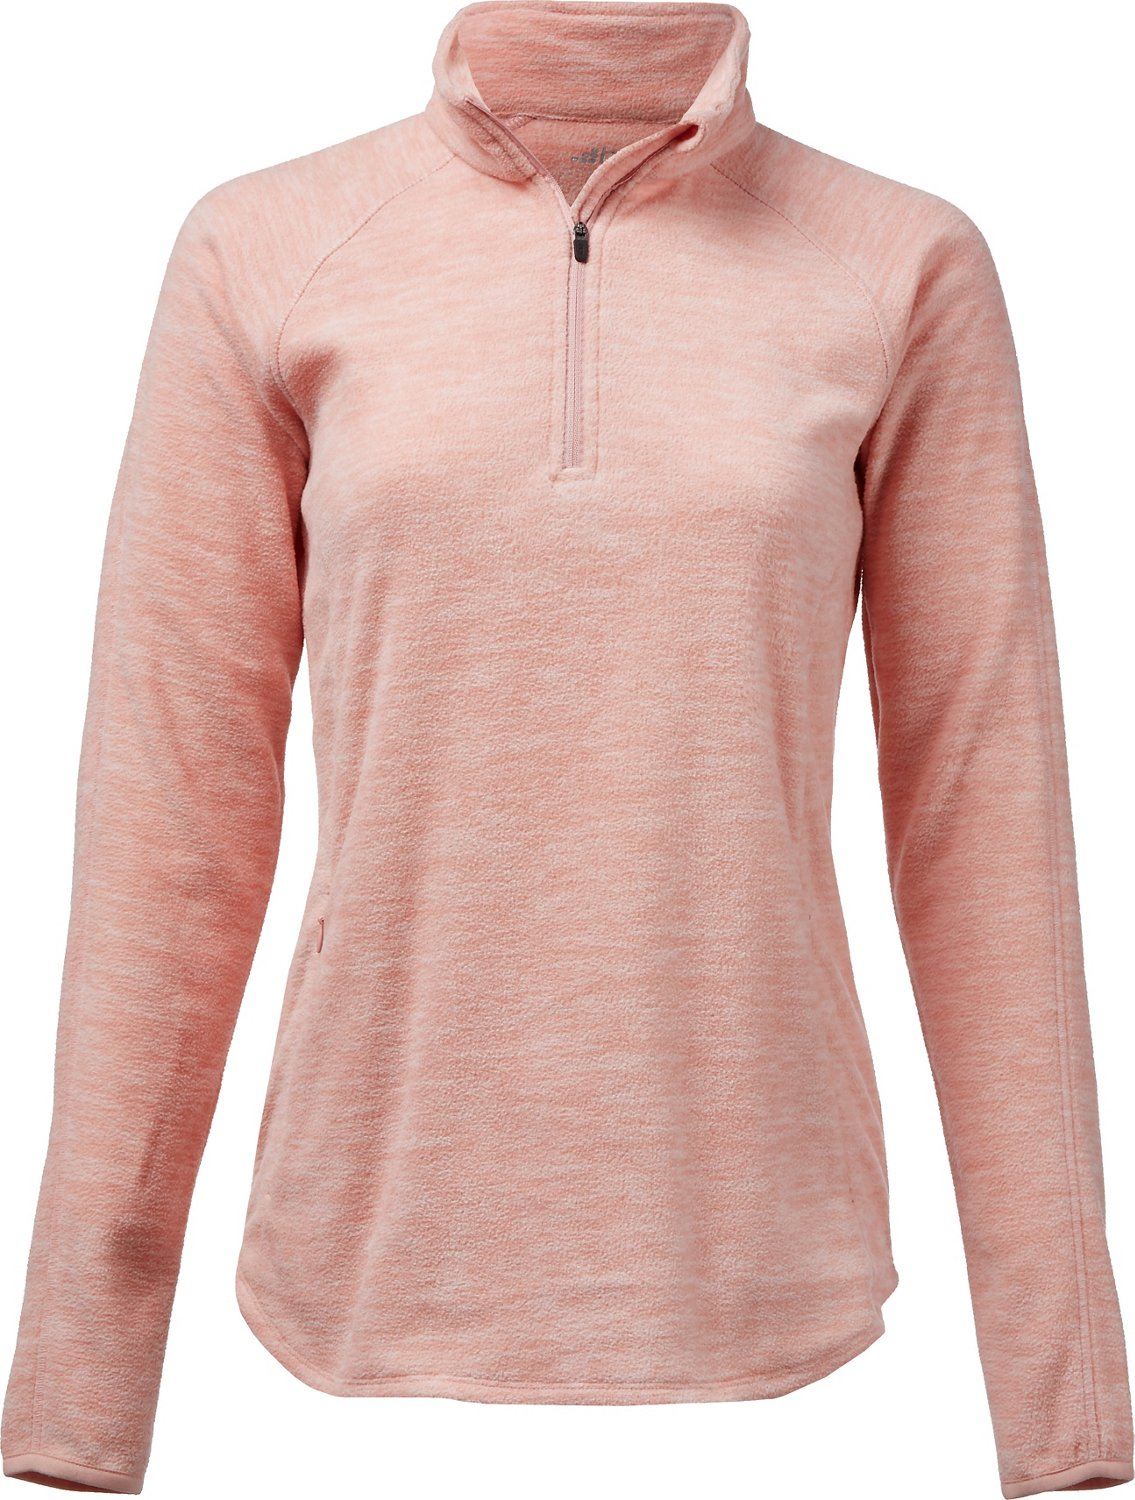 e3f038bc9 Display product reviews for BCG Women's 1/4-Zip Microfleece Shirt